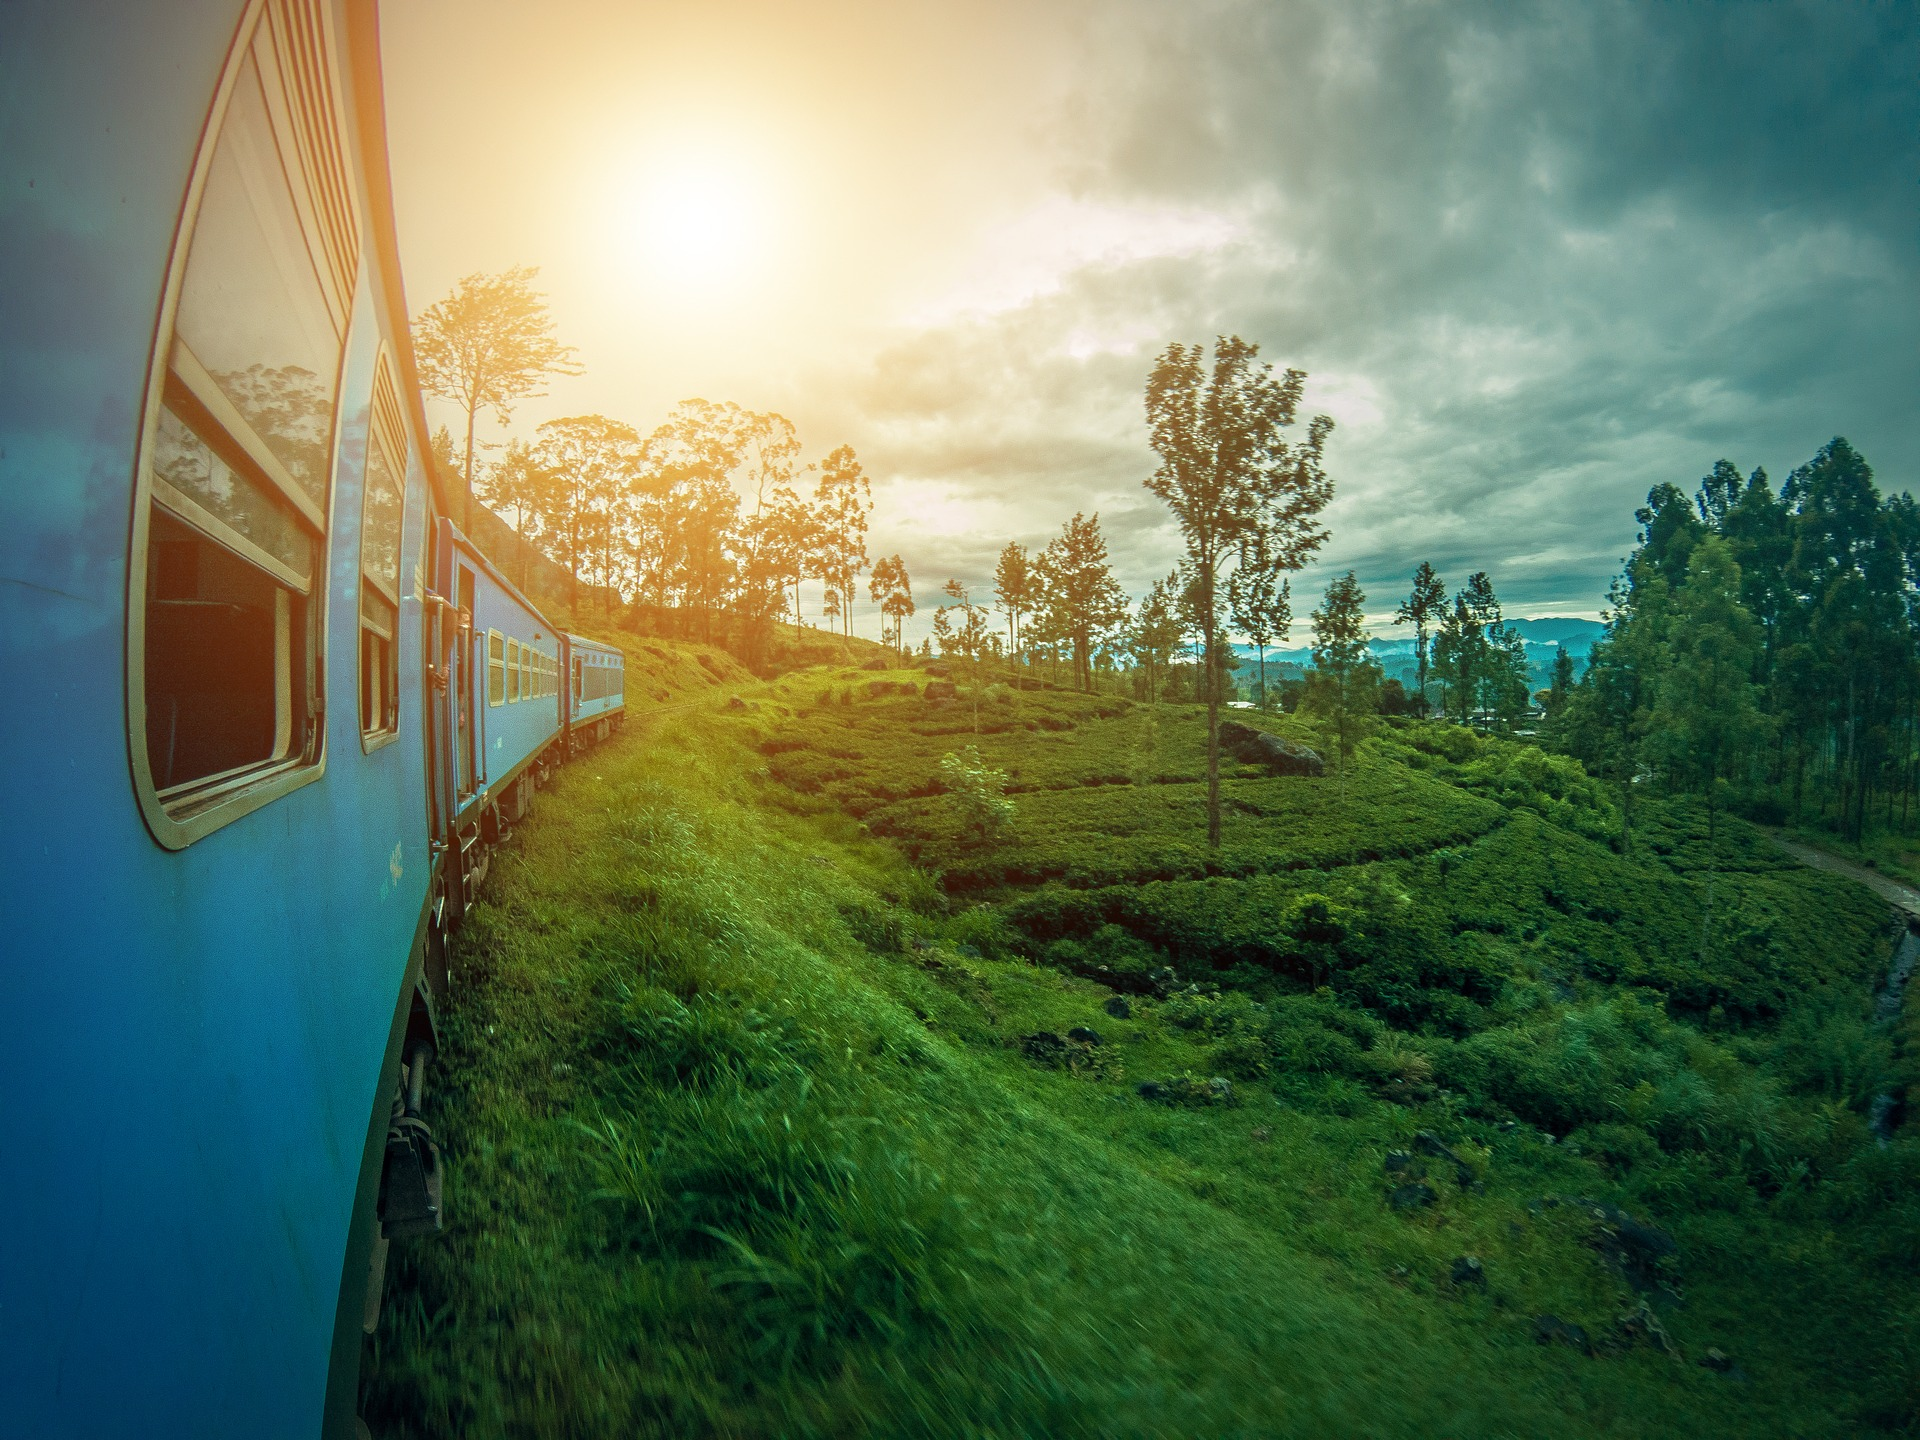 The Ella to Kandy train takes you through some of Sri Lanka's most beautiful scenic spots.